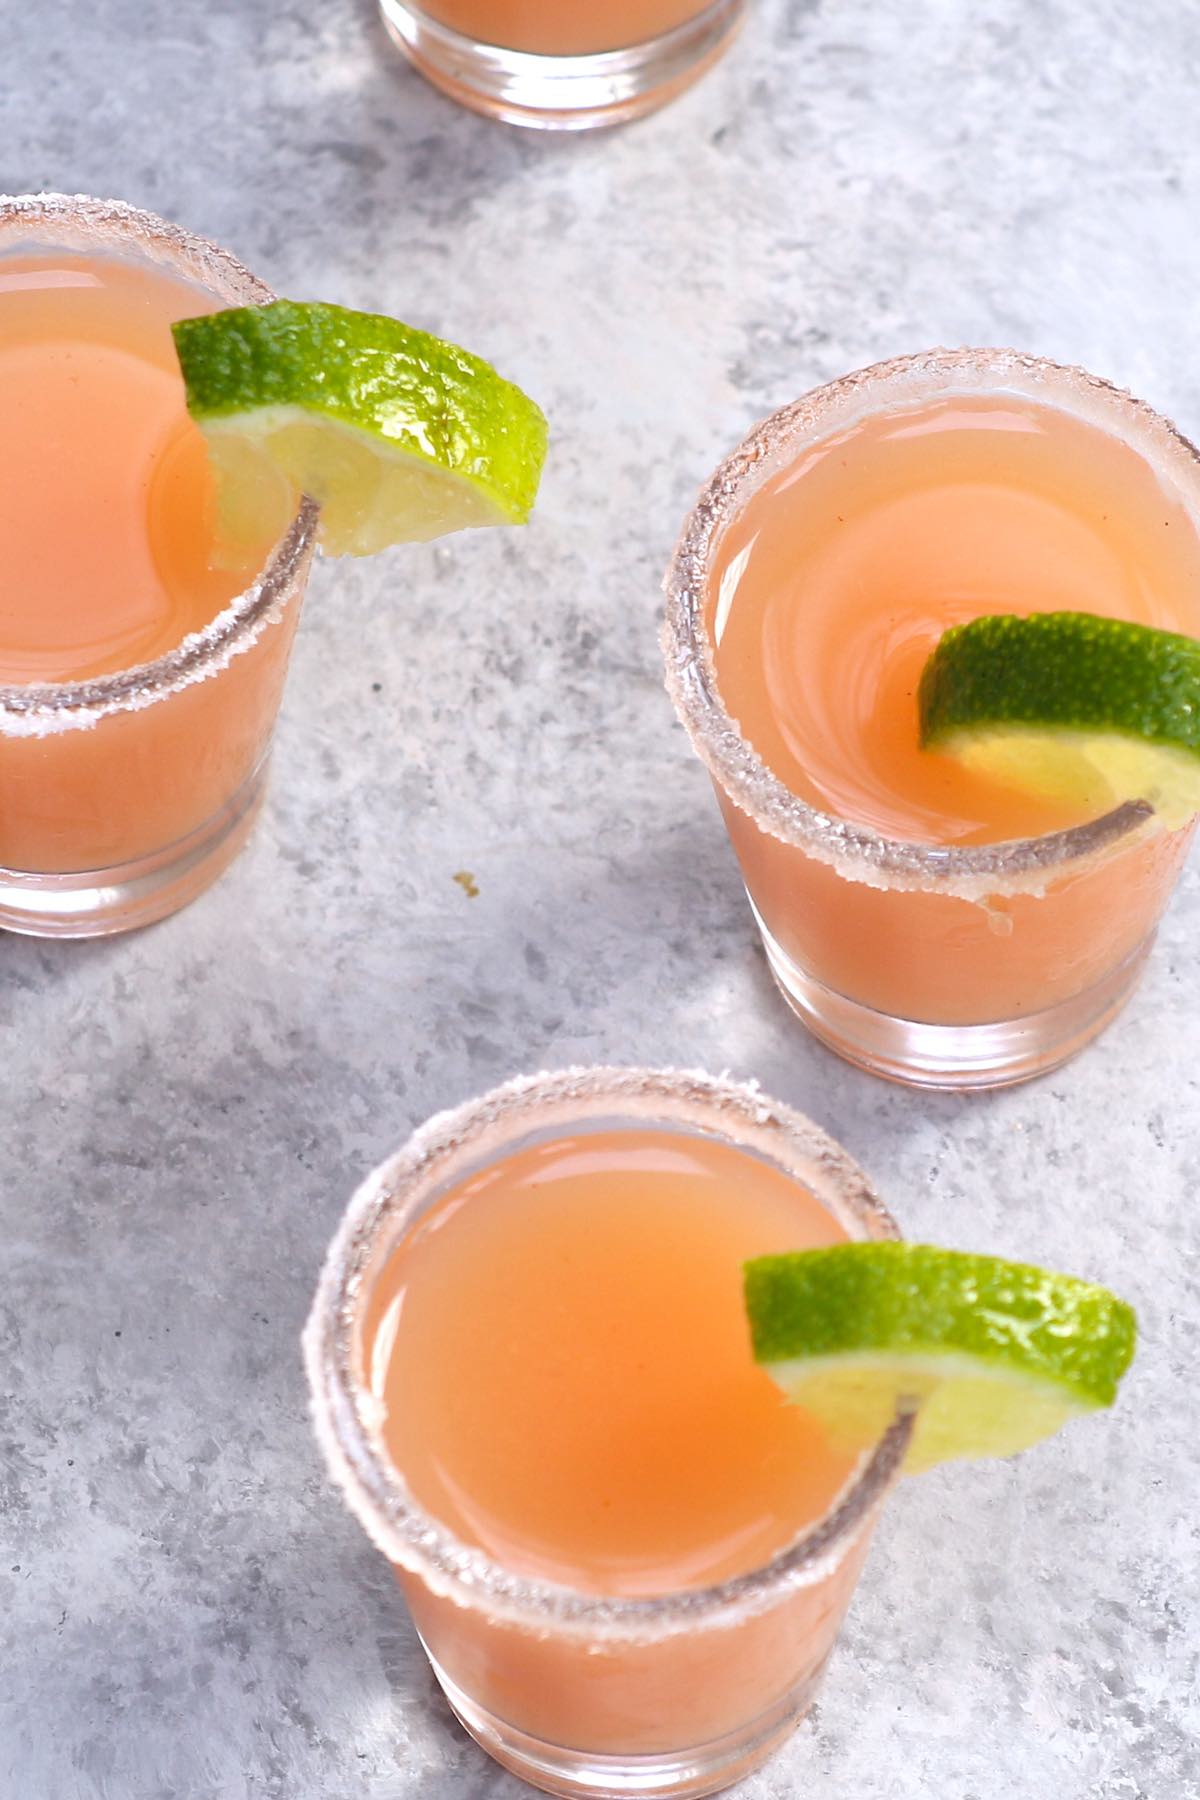 Mexican Candy Shot is sure to impress your family and friends at your next dinner party! It's sweet and slightly spicy with lots of fruity flavors. This recipe is easy to make, and you can customize it with different flavors like watermelon, strawberry, or guava juice.